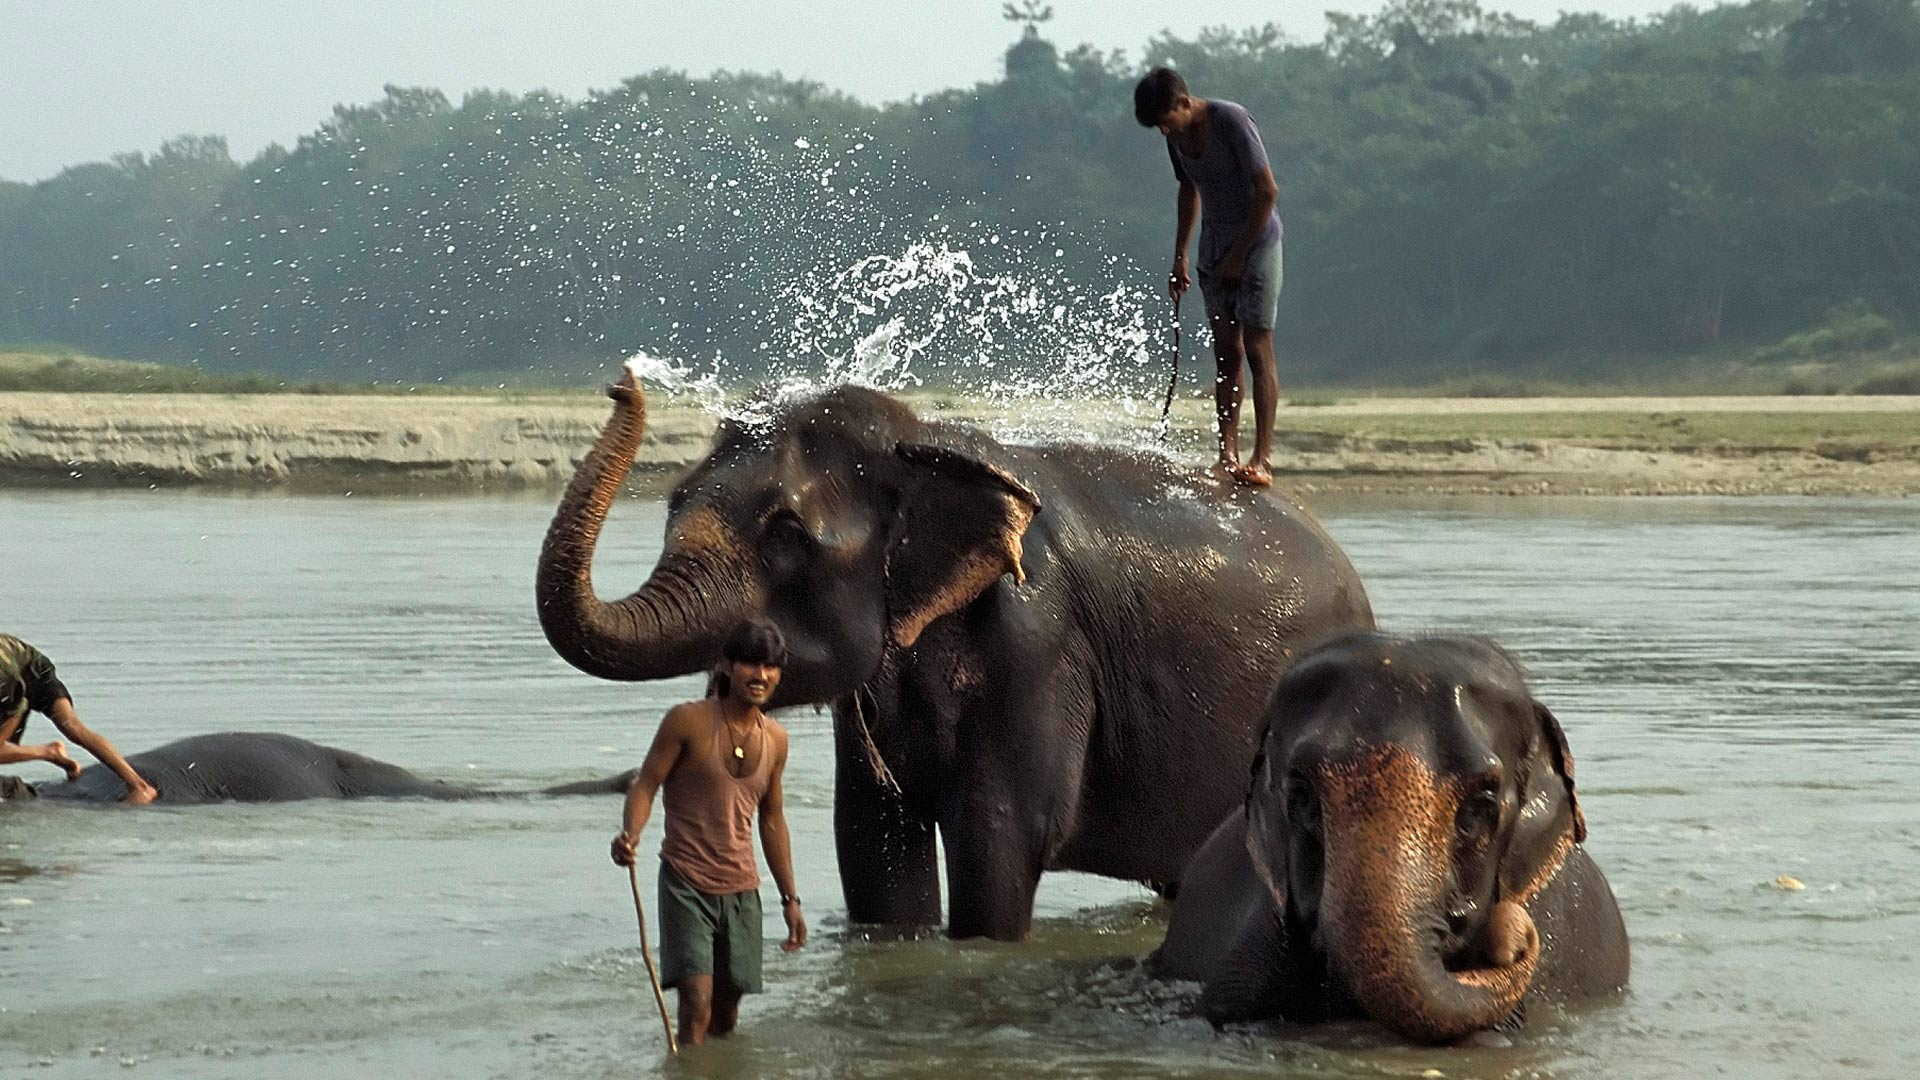 Indian Elephants (Elephas maximus indicus) having a bath in the Rapti River in Chitwan National Park, Madhyamanchal (Central Region), Nepal